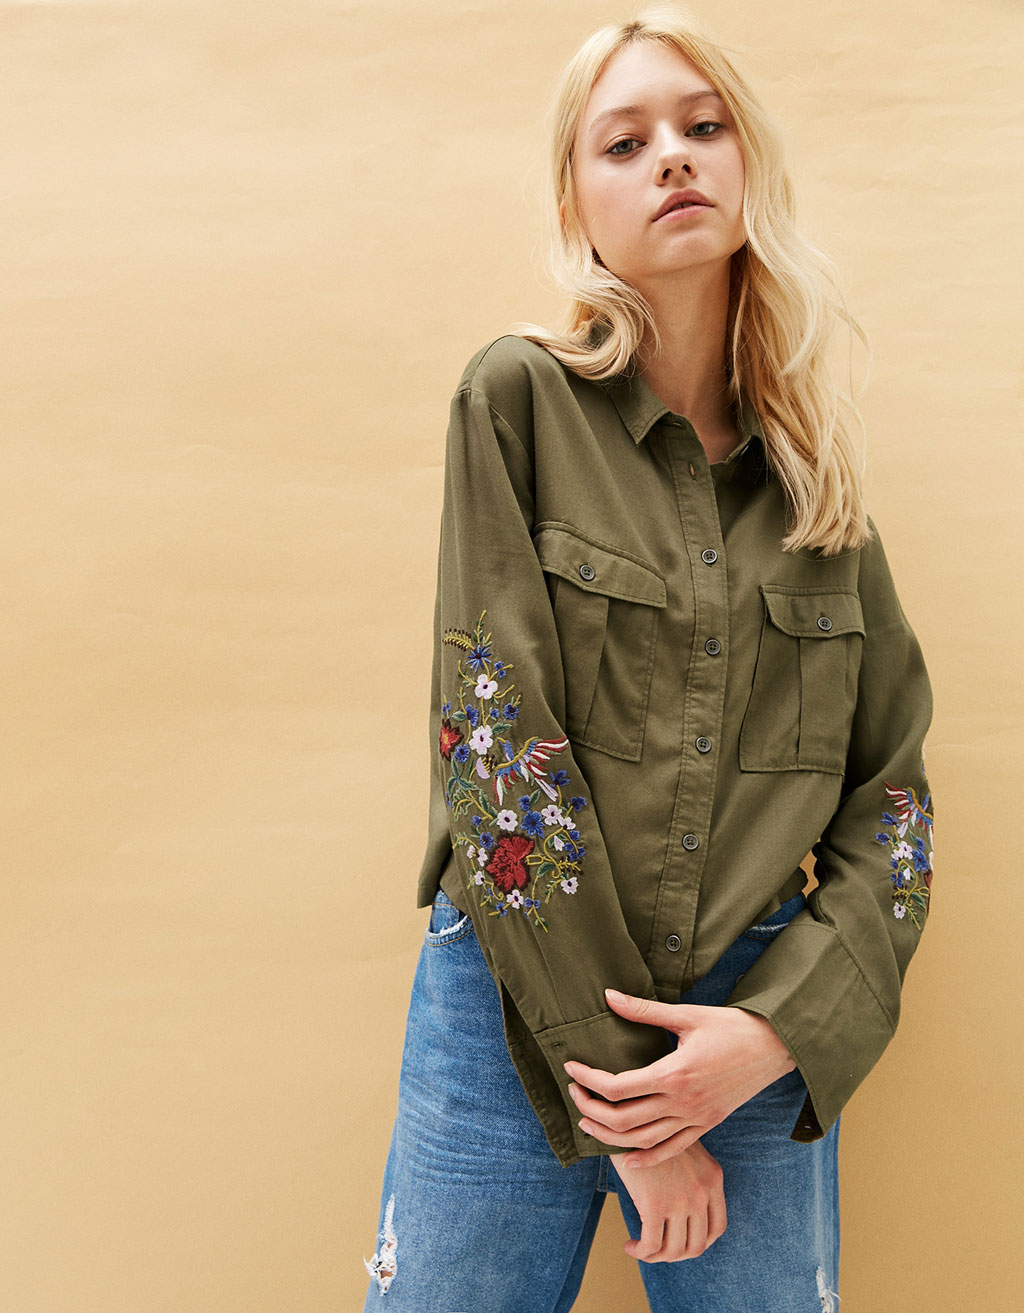 Tencel military shirt with floral embroidery